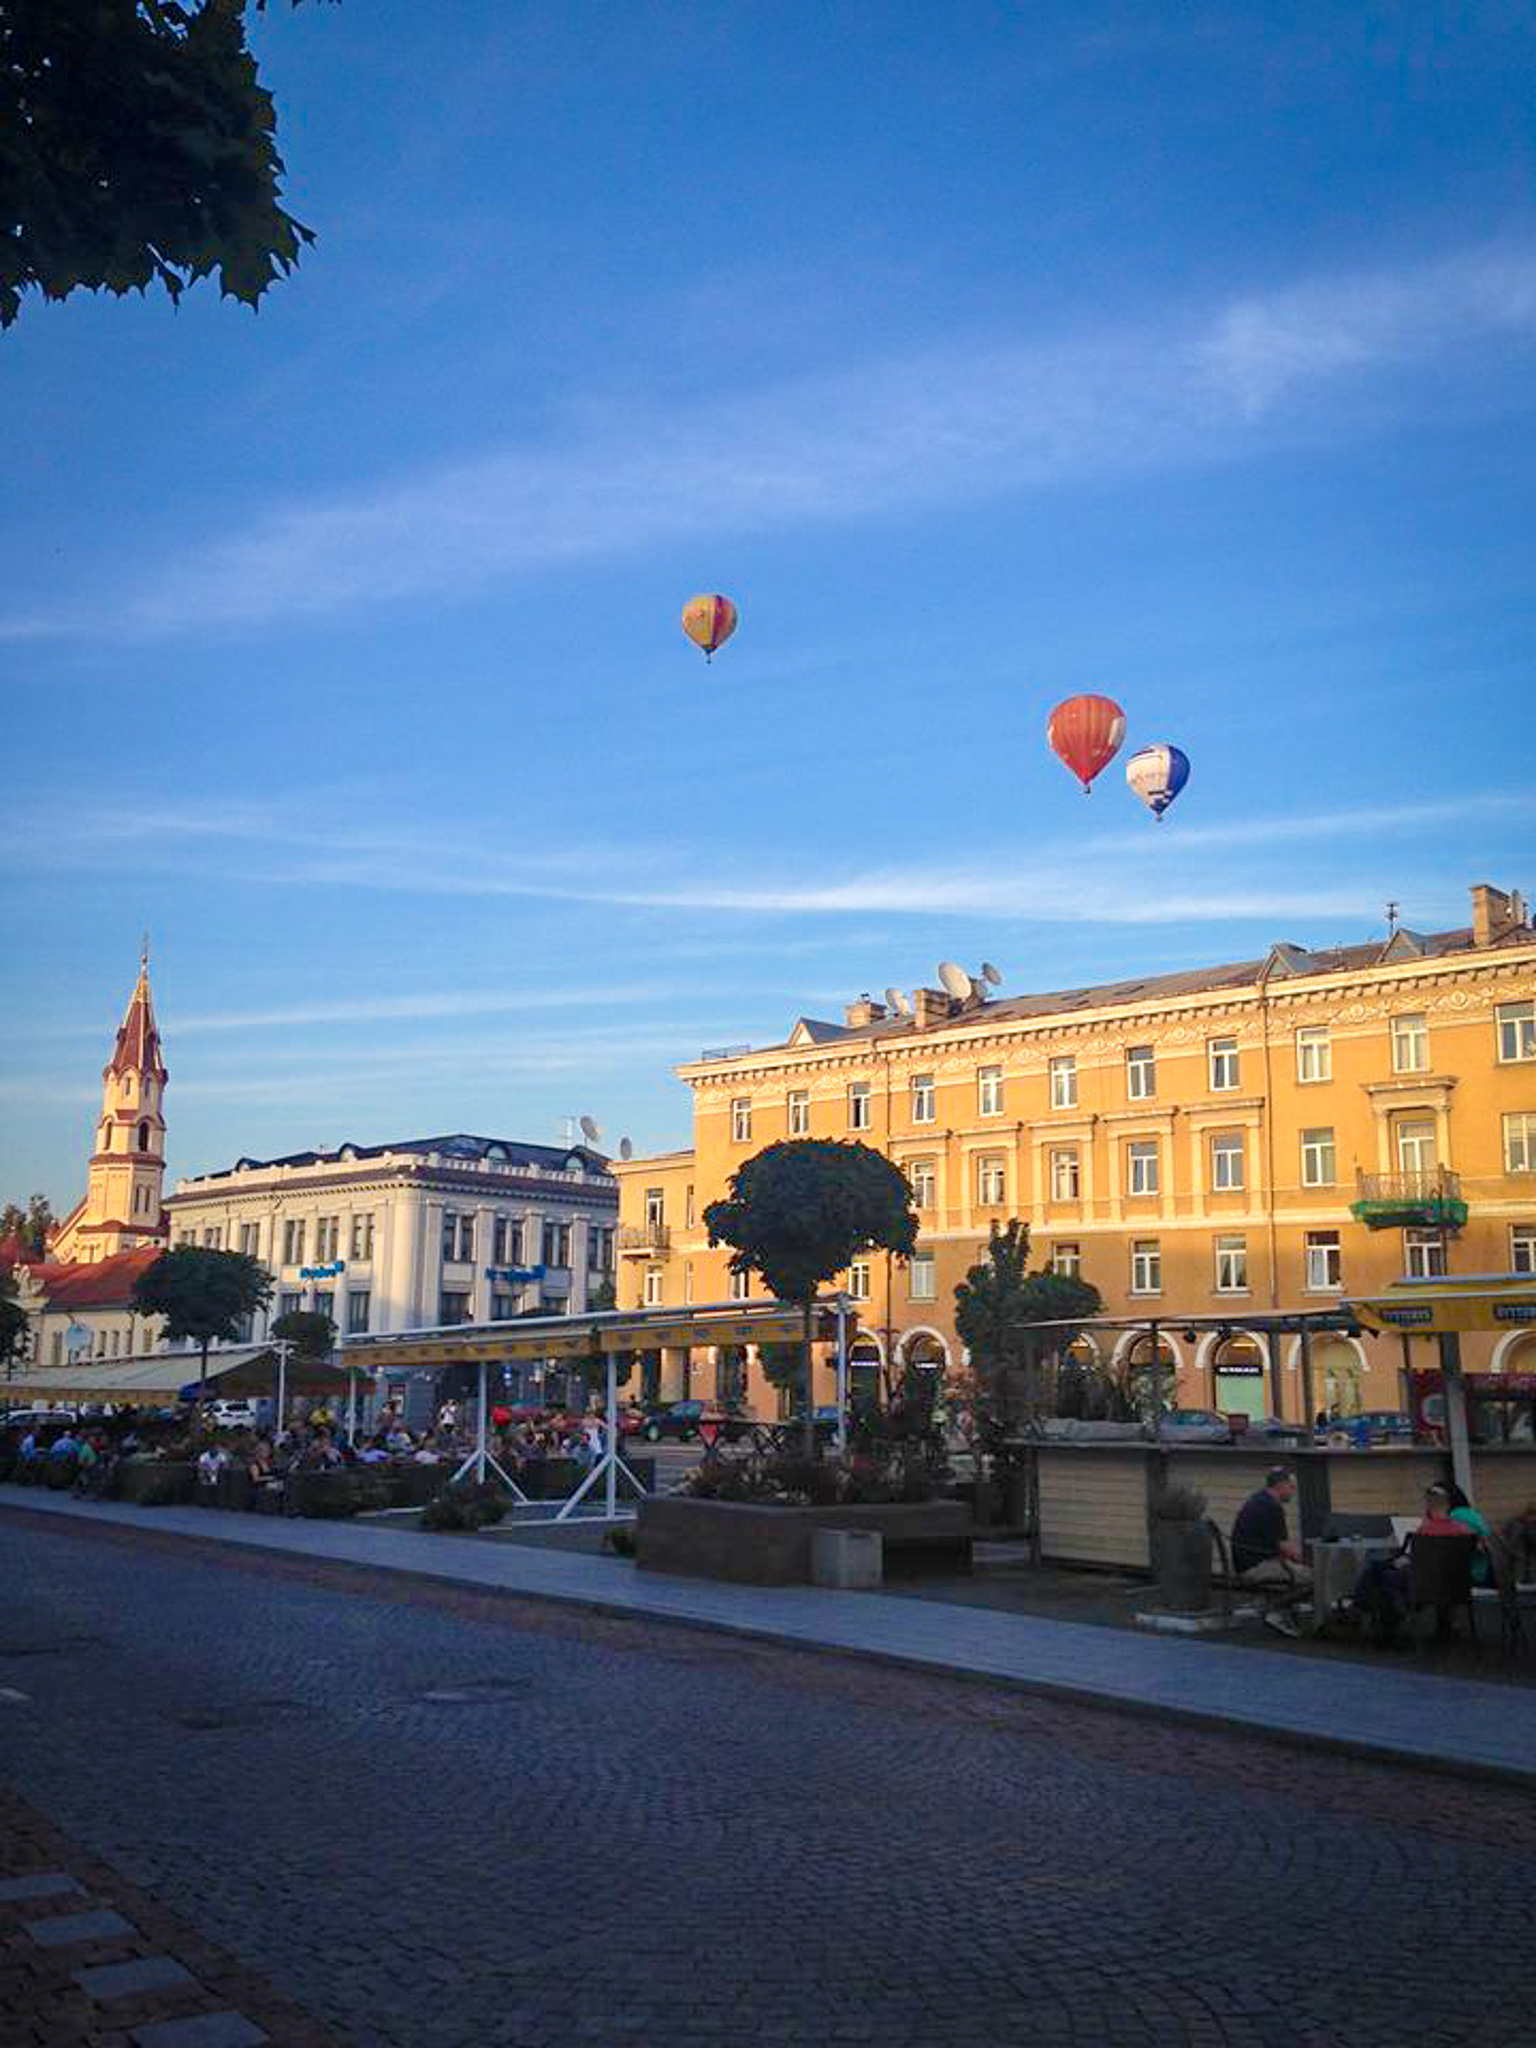 One of my fondest memories of that trip was watching the hot air balloons floating over Town Hall Square.